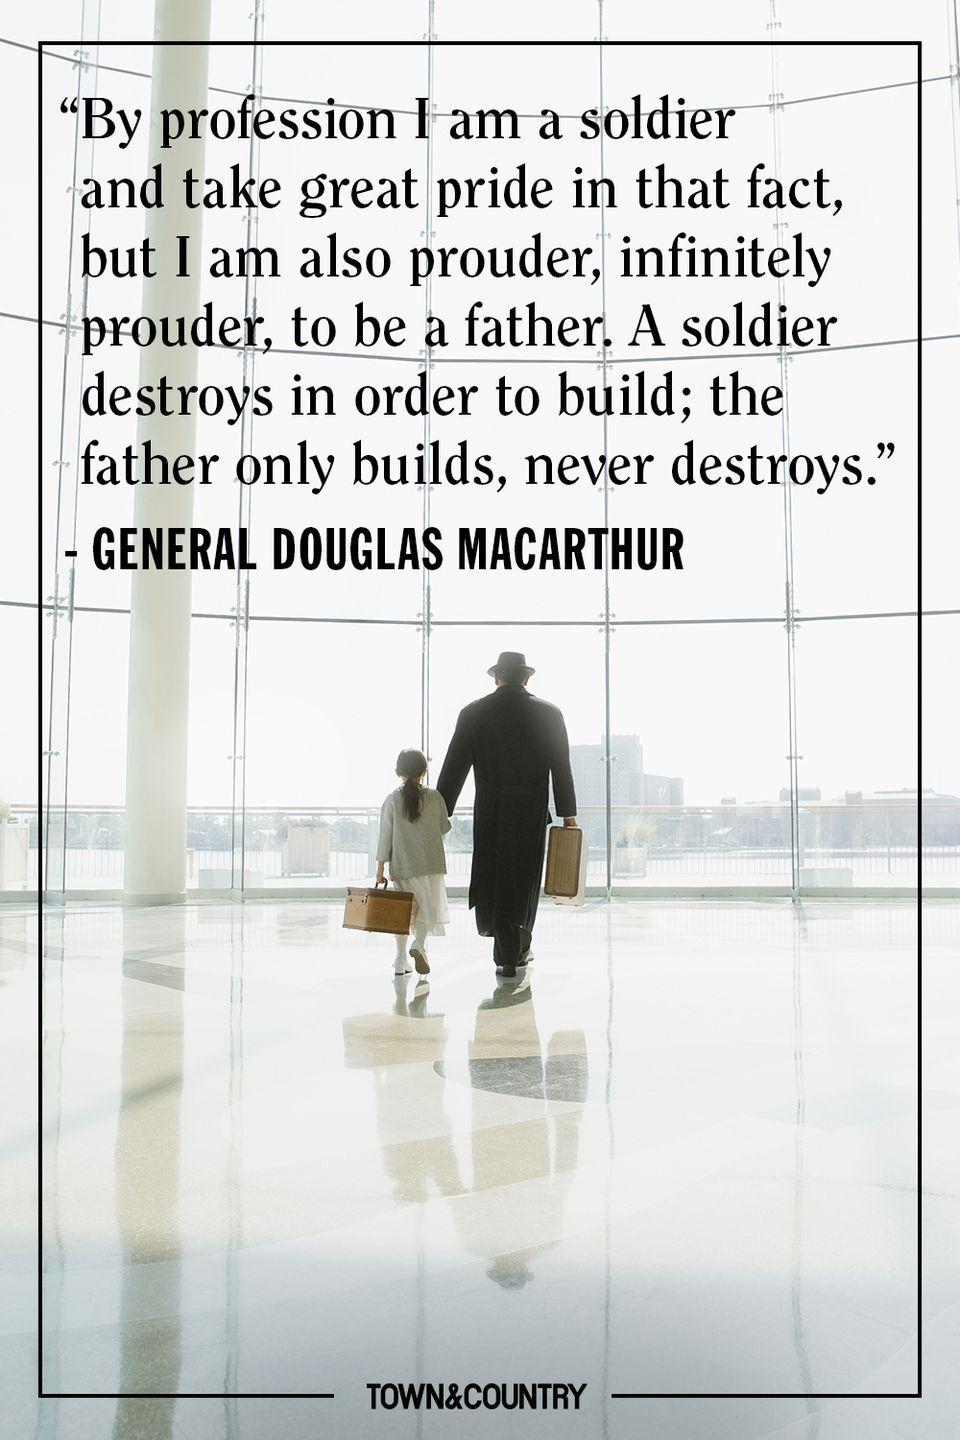 "<p>""By profession I am a soldier and take great pride in that fact, but I am also prouder, infinitely prouder, to be a father. A soldier destroys in order to build; the father only builds, never destroys.""</p><p>- General Douglas MacArthur</p>"